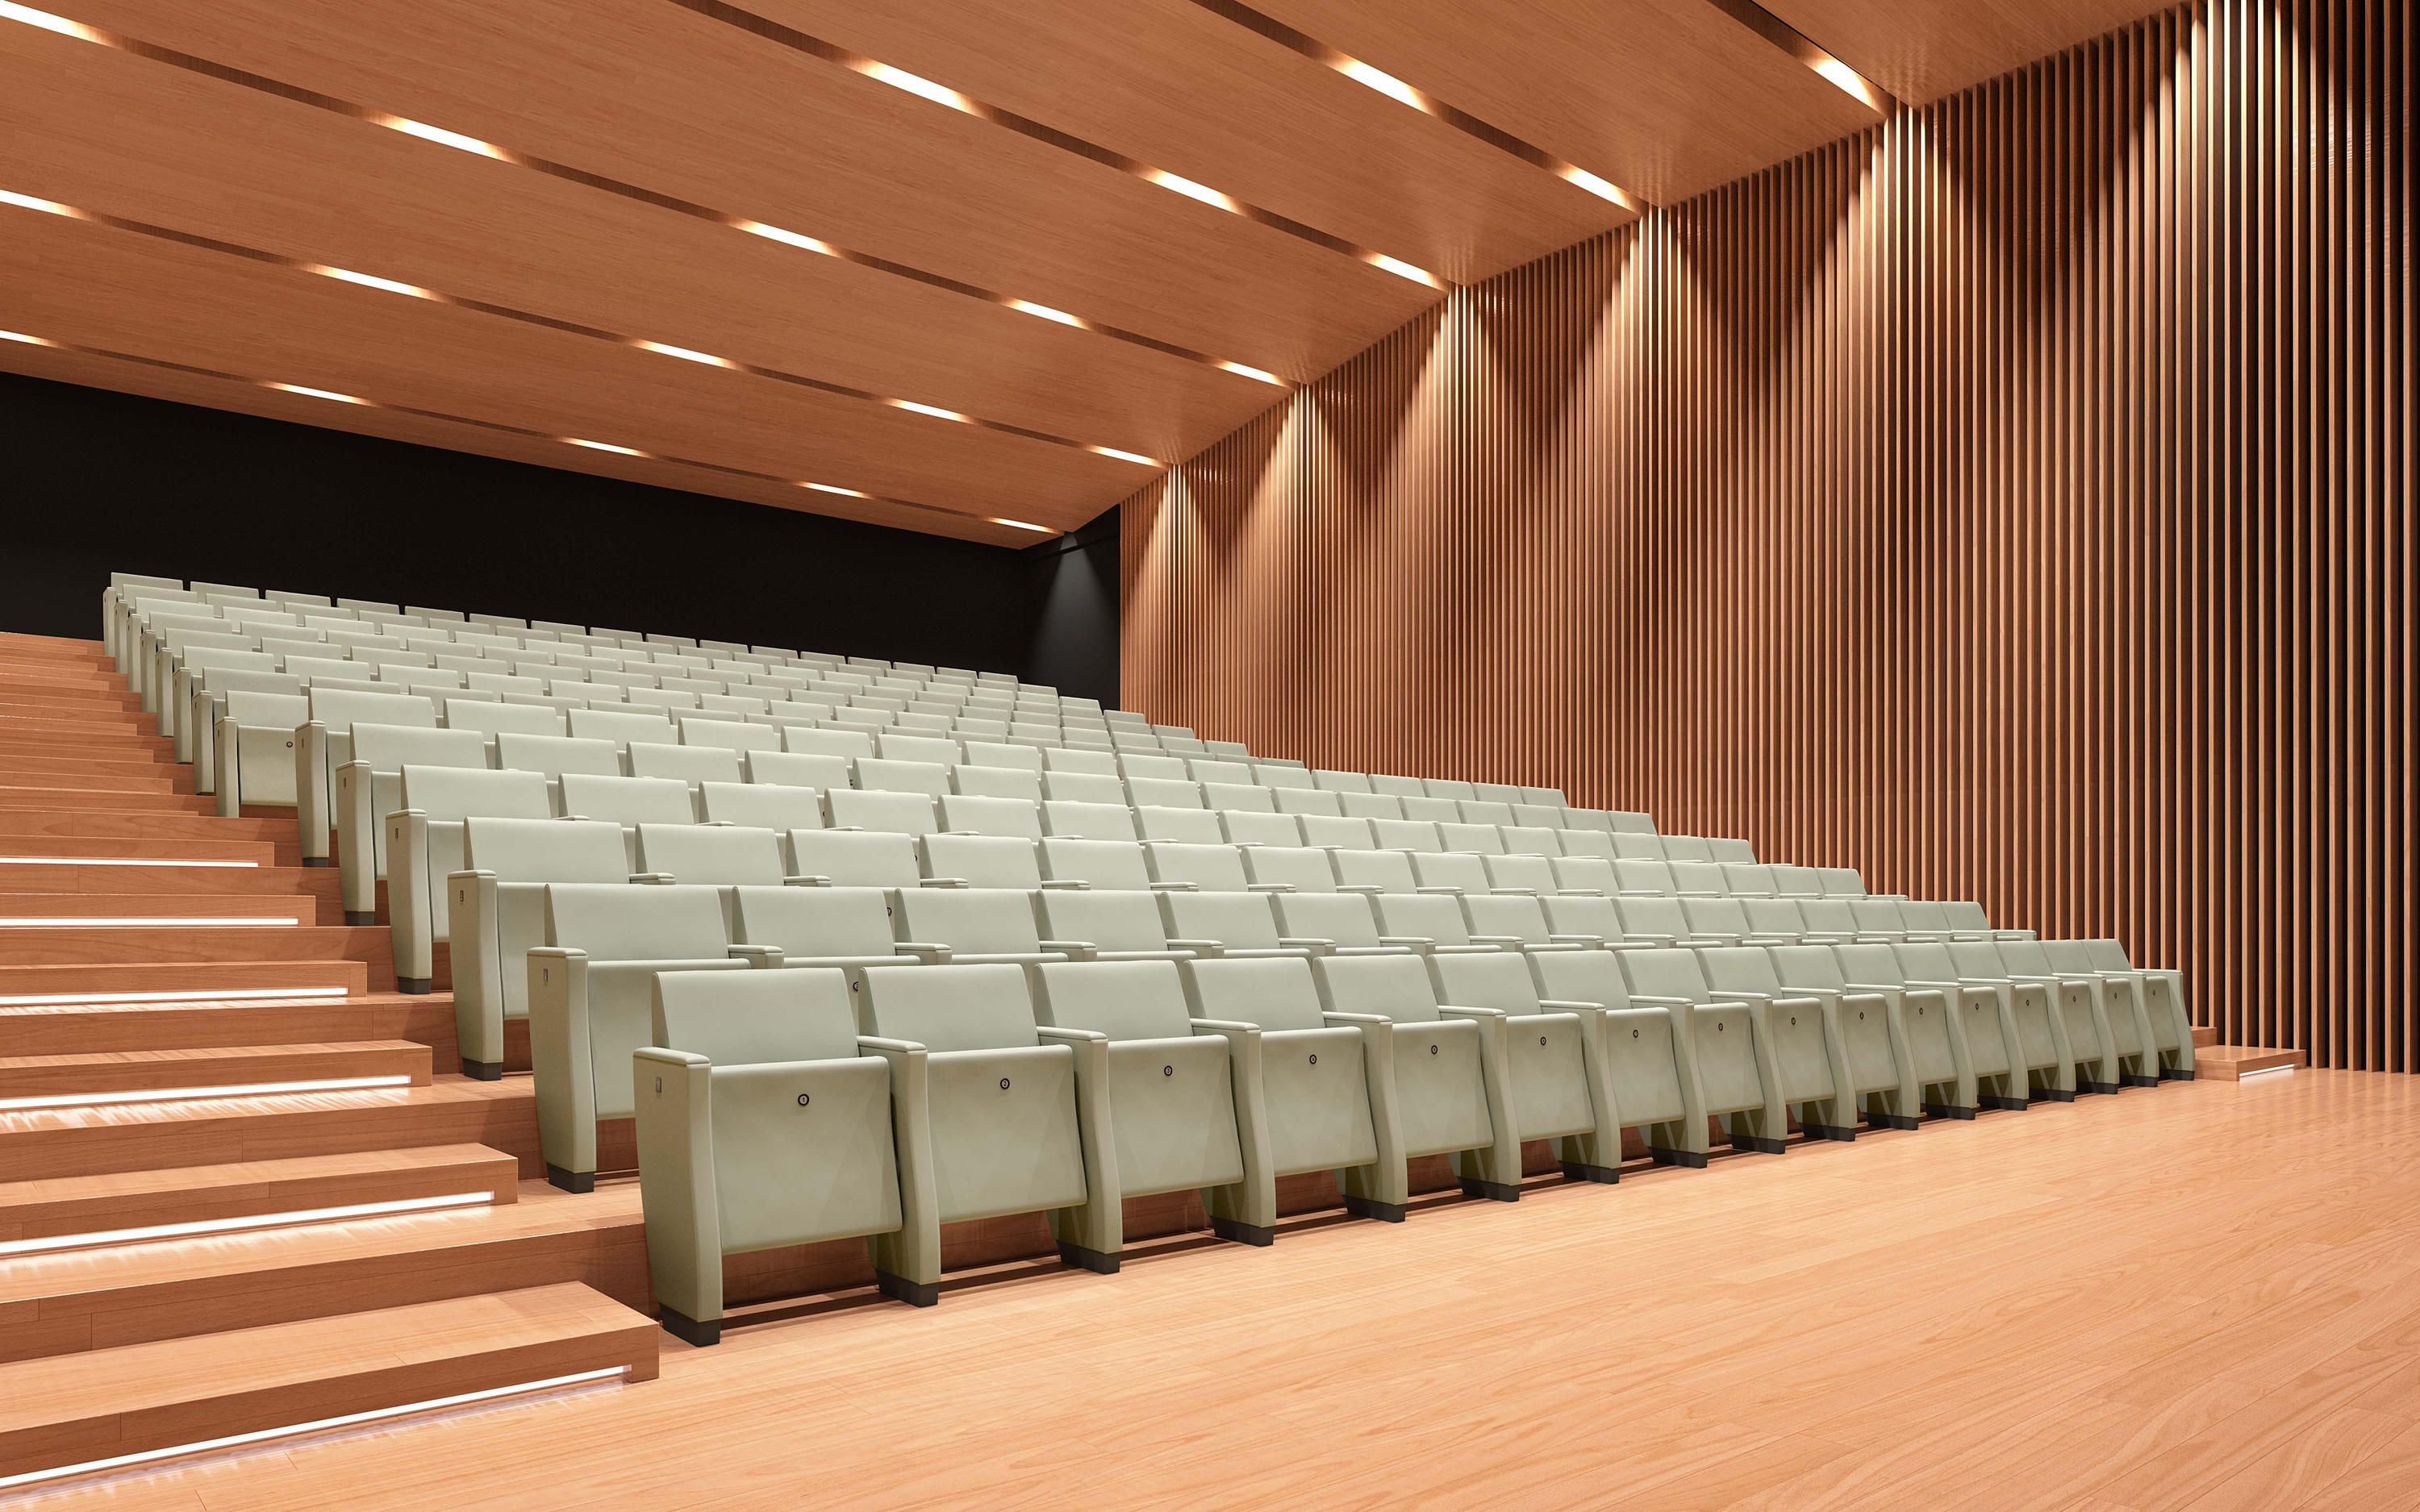 Prima Designer Auditorium Seating From Emmegi 사무실 계단